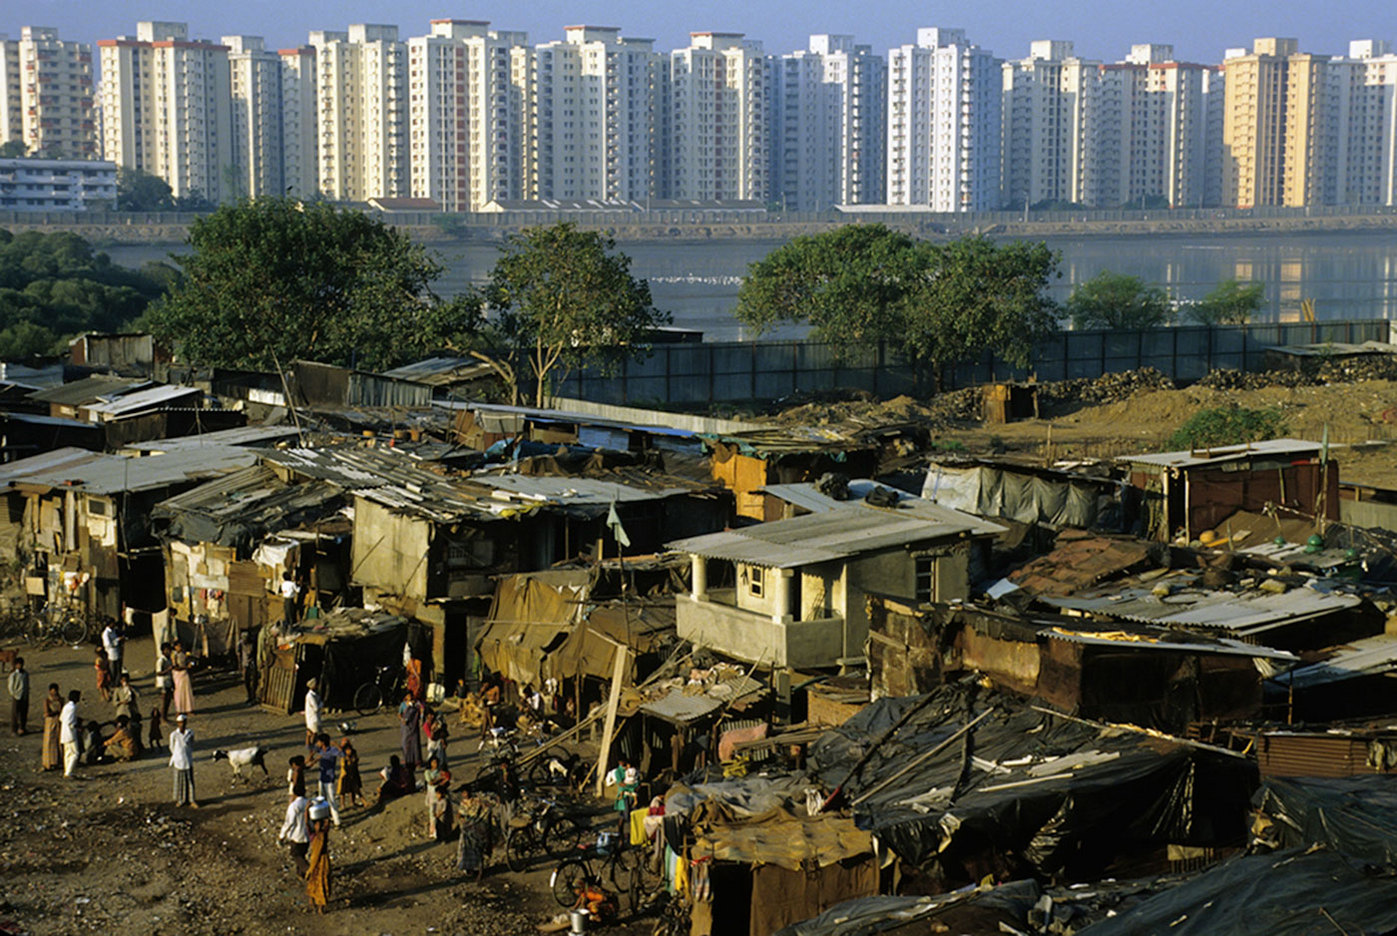 Mumbai slums in front of Cuffe Parade luxury condos :  DAILY LIFE; The Rich, the Poor & the Others : Viviane Moos |  Documentary Photographer